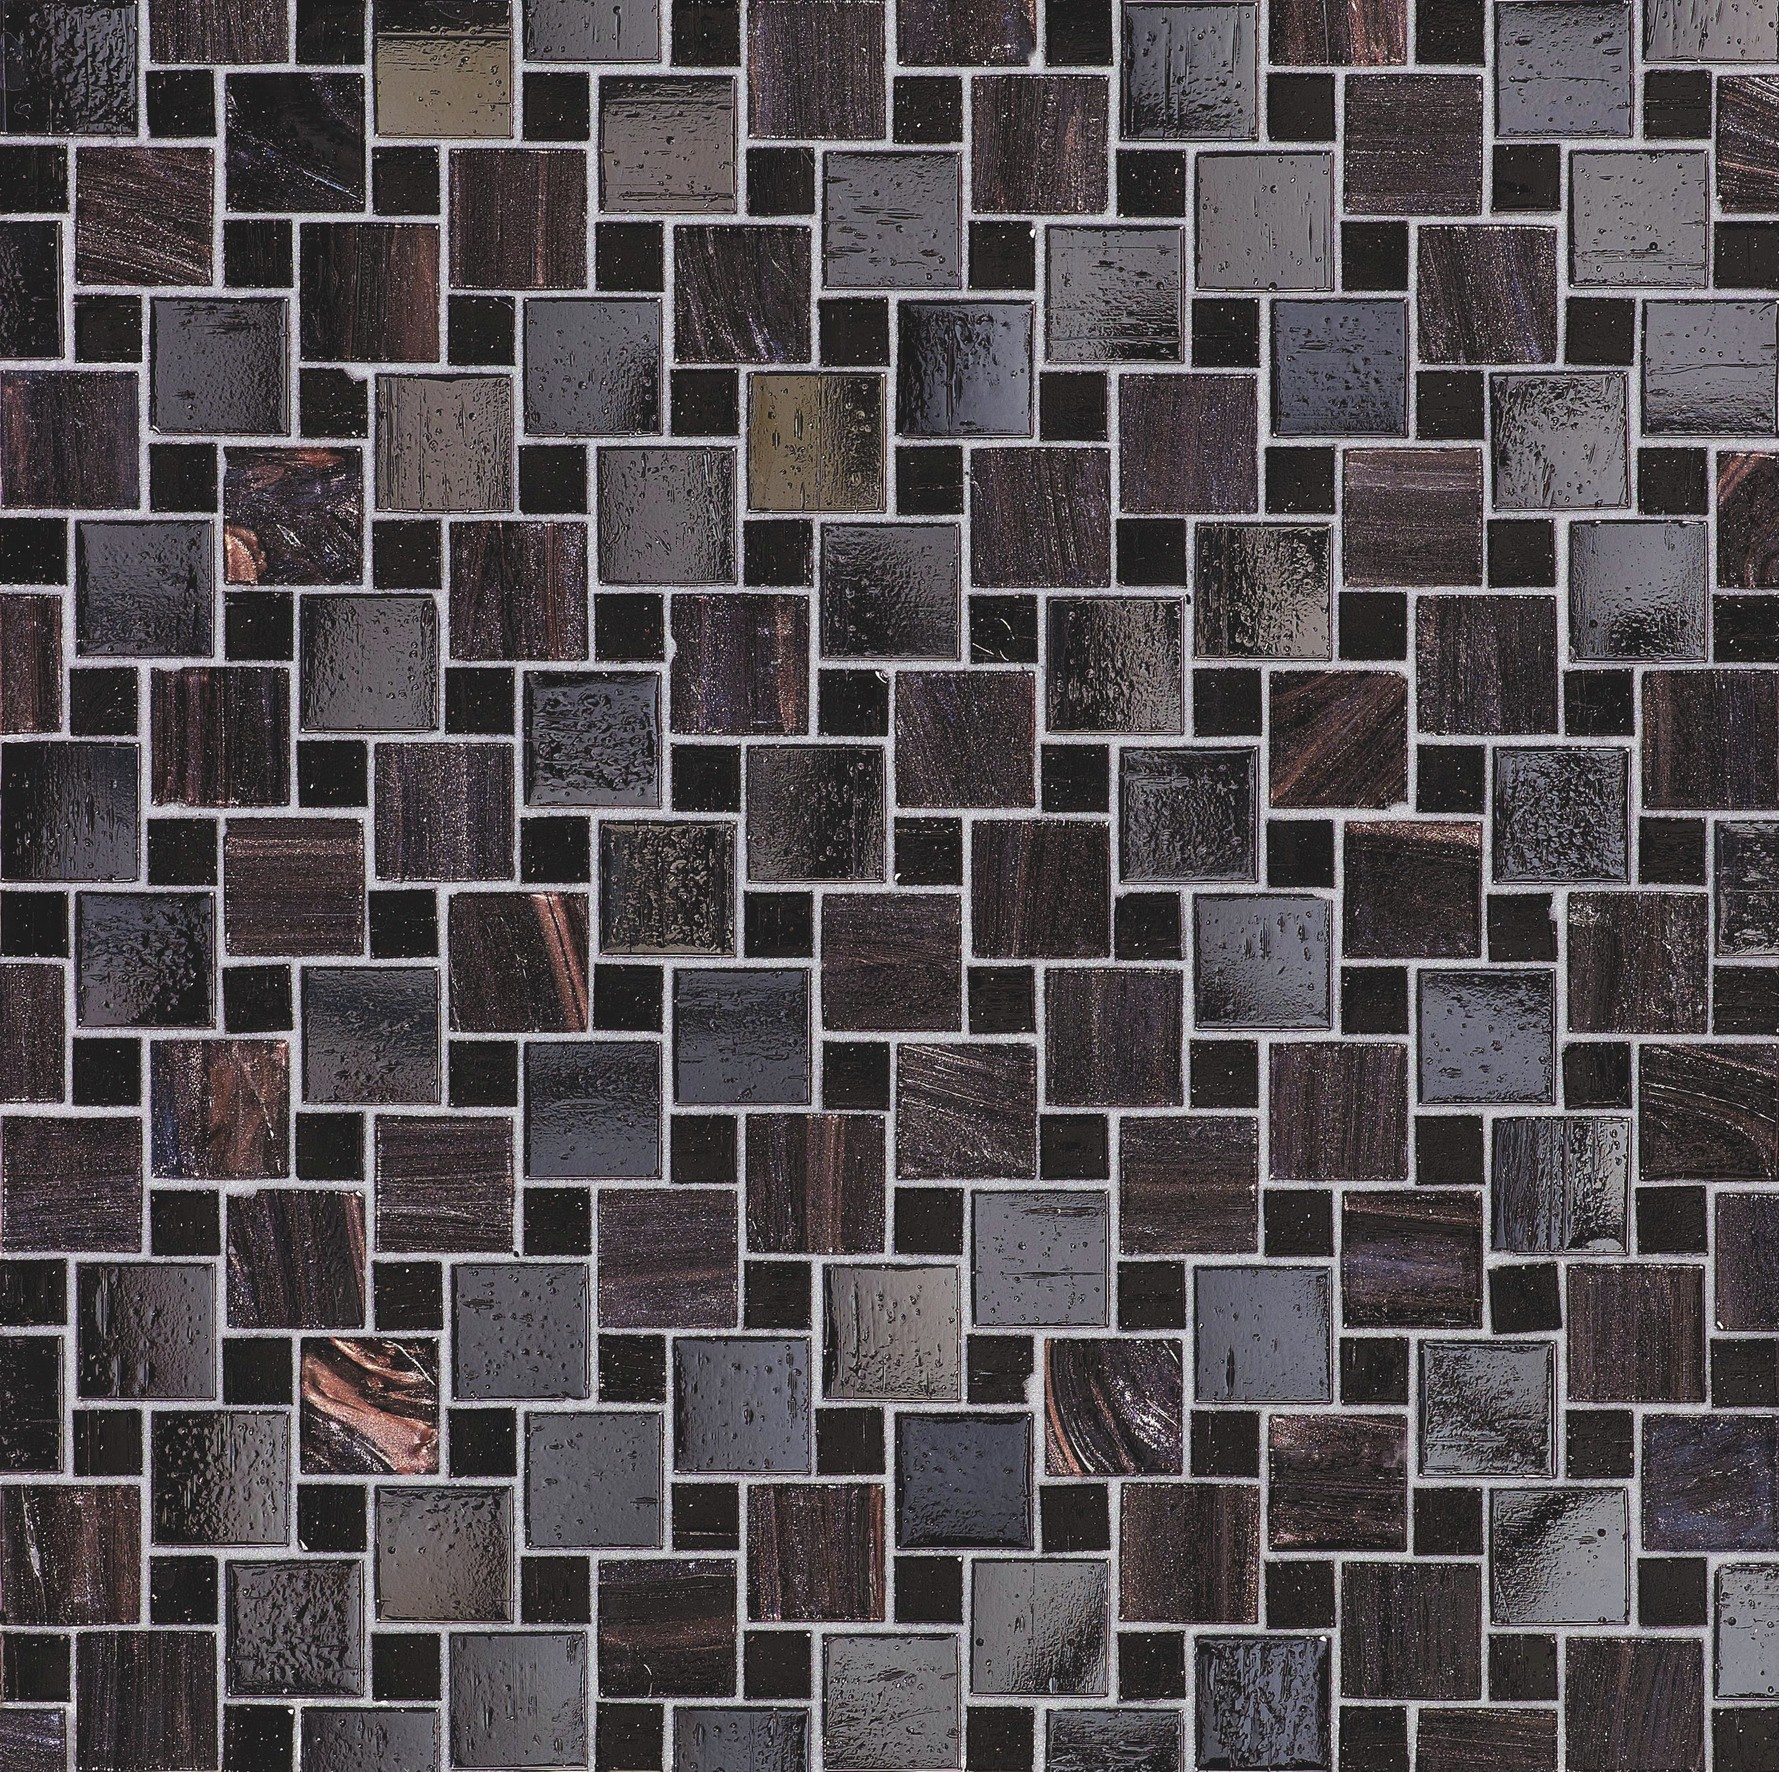 Bisazza Augusta Variations Blend of Glass Mosaic Tile 10 - 20 mm Combo, 10 sheets